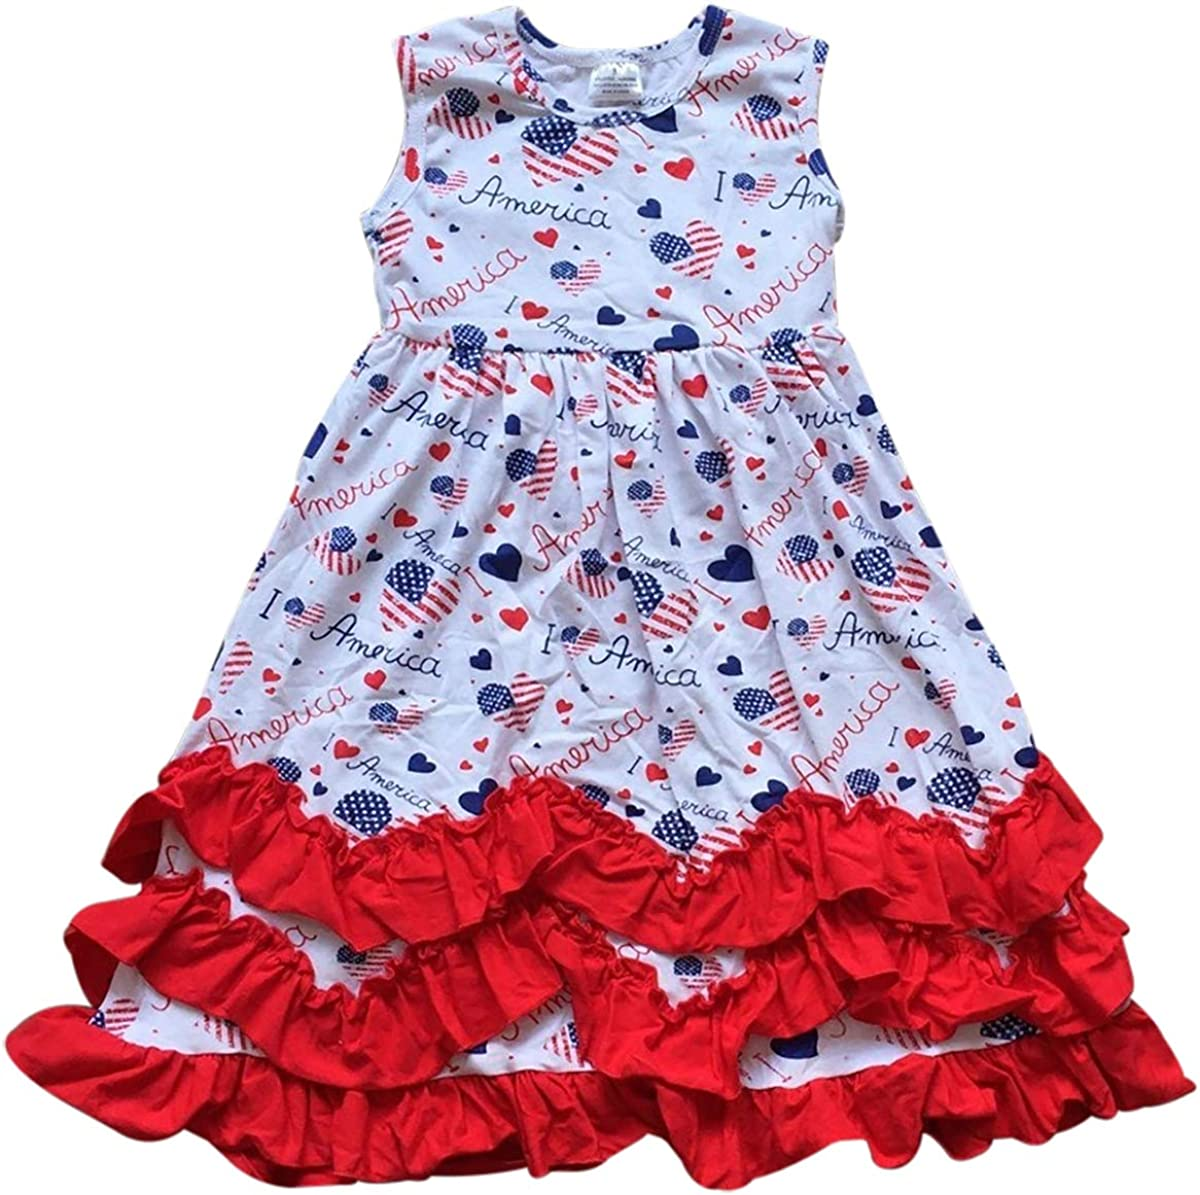 Flower Girl Dress Heart America Print Layered Ruffles Party Dress Special Occasion Dress for Girl